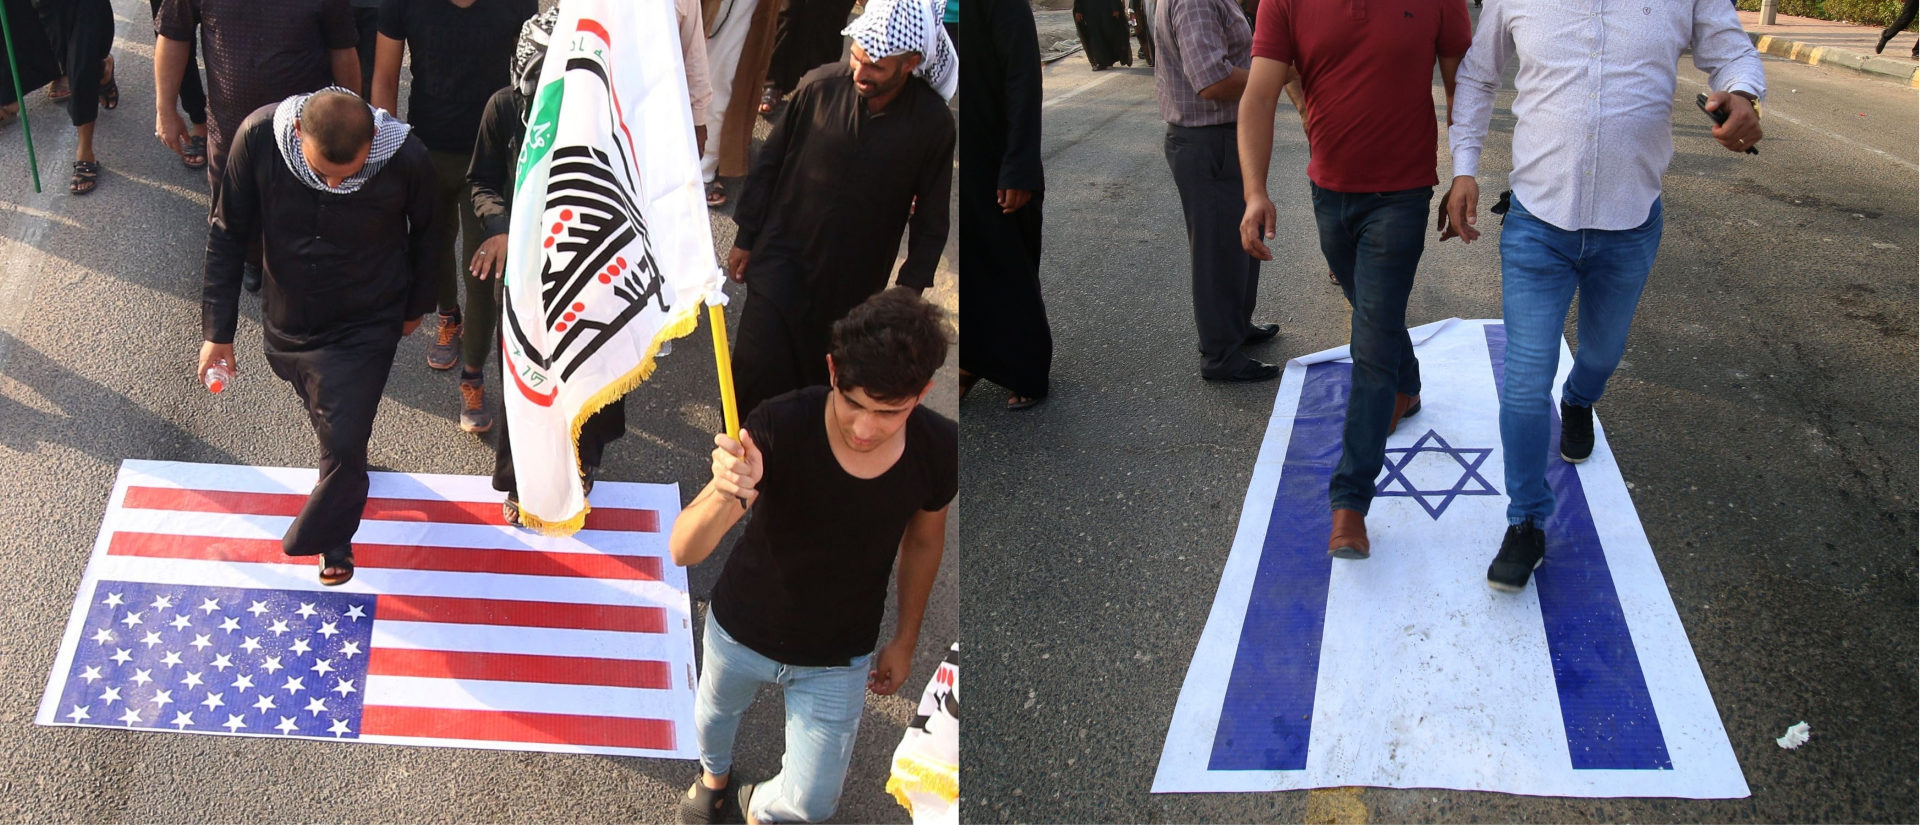 Demonstrators waving Iranian and pro-Iranian party flags step on a US [and Israeli] flags during a protest on September 15, 2018, against the torching of the Iranian Consulate and the Hashed al-Shaabi party (Popular Mobilisation) headquarters during recent protests in the southern Iraqi city of Basra. - Basra had been rocked by protests with demonstrators setting ablaze government buildings, the Iranian consulate and the offices of pro-Tehran militias and political parties. (Photo by Haidar MOHAMMED ALI / AFP) (Photo credit should read HAIDAR MOHAMMED ALI/AFP/Getty Images)